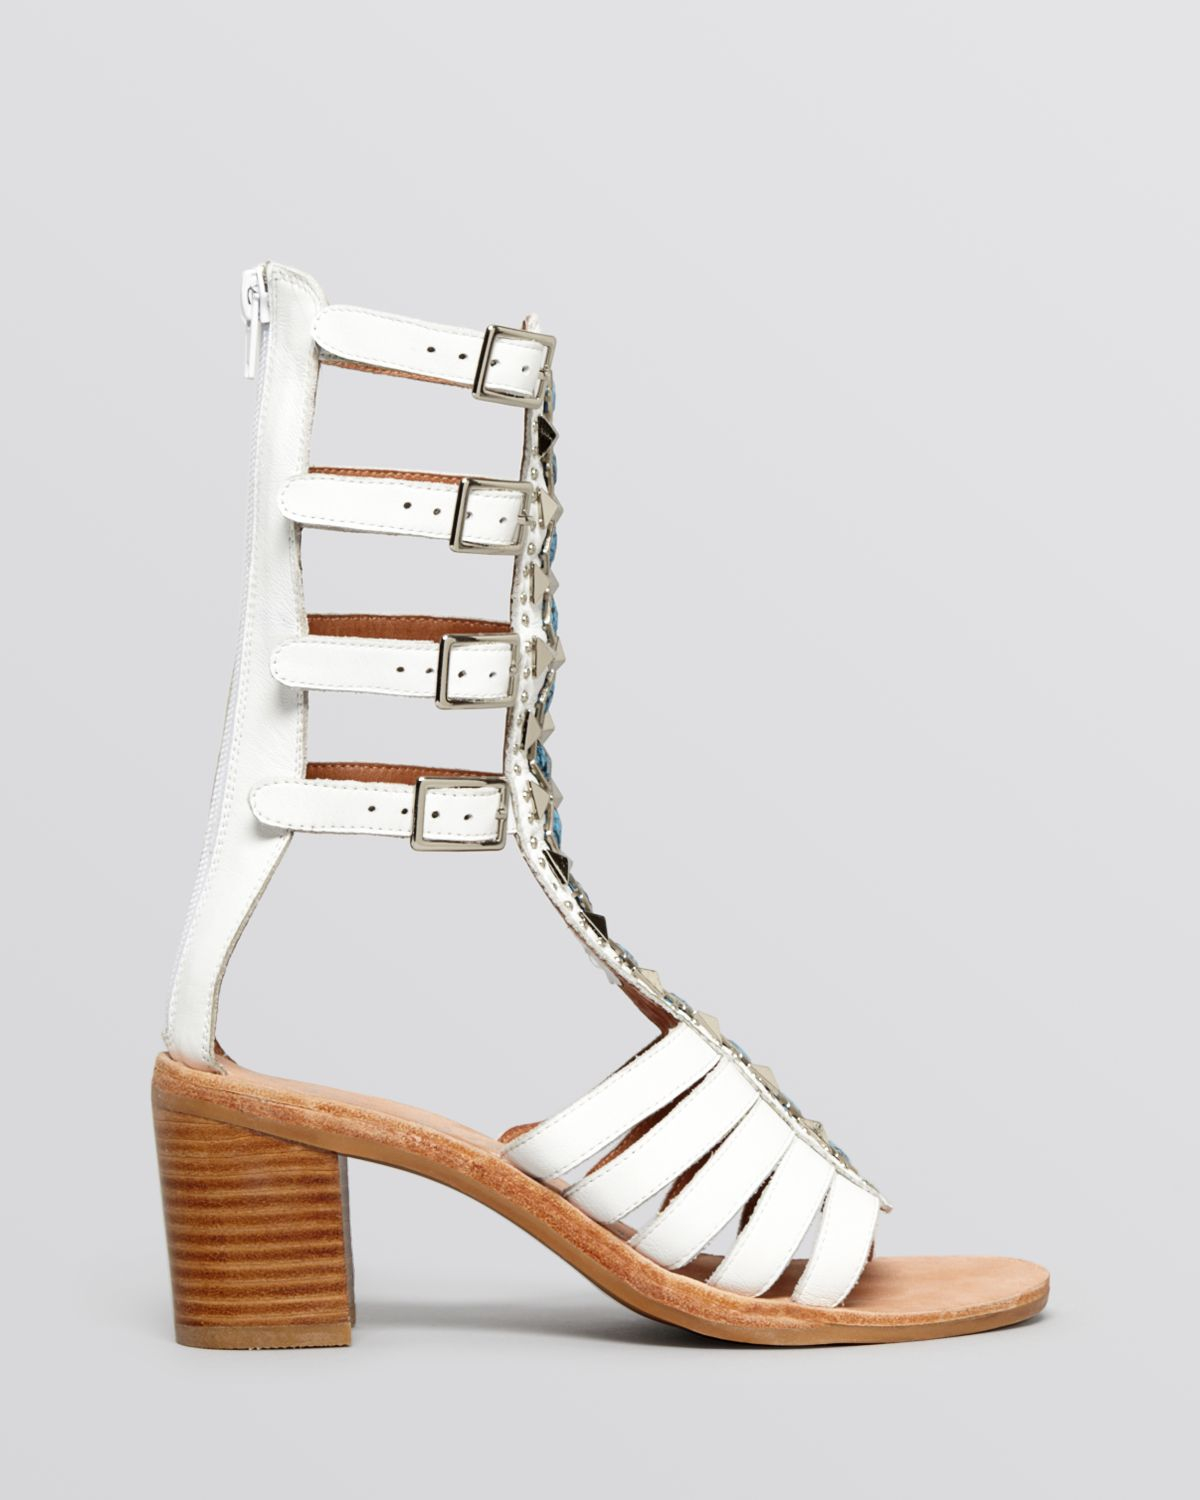 Lyst - Jeffrey campbell Flat Gladiator Sandals - Klamath Block ...